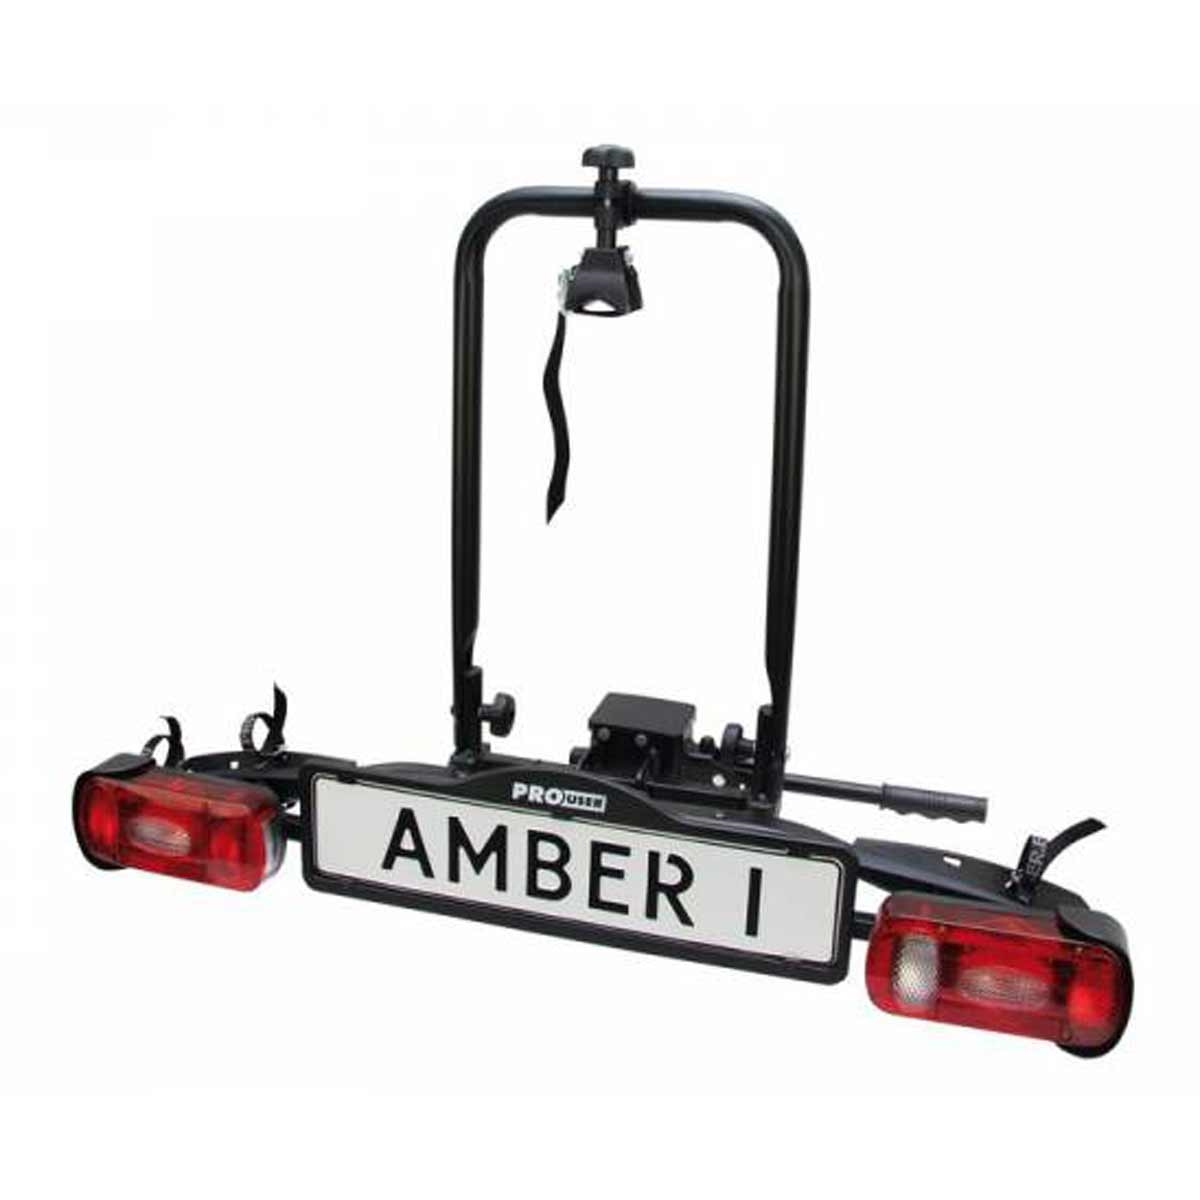 Pro-User Amber 1 Lux 1 cykel 7/13 pol